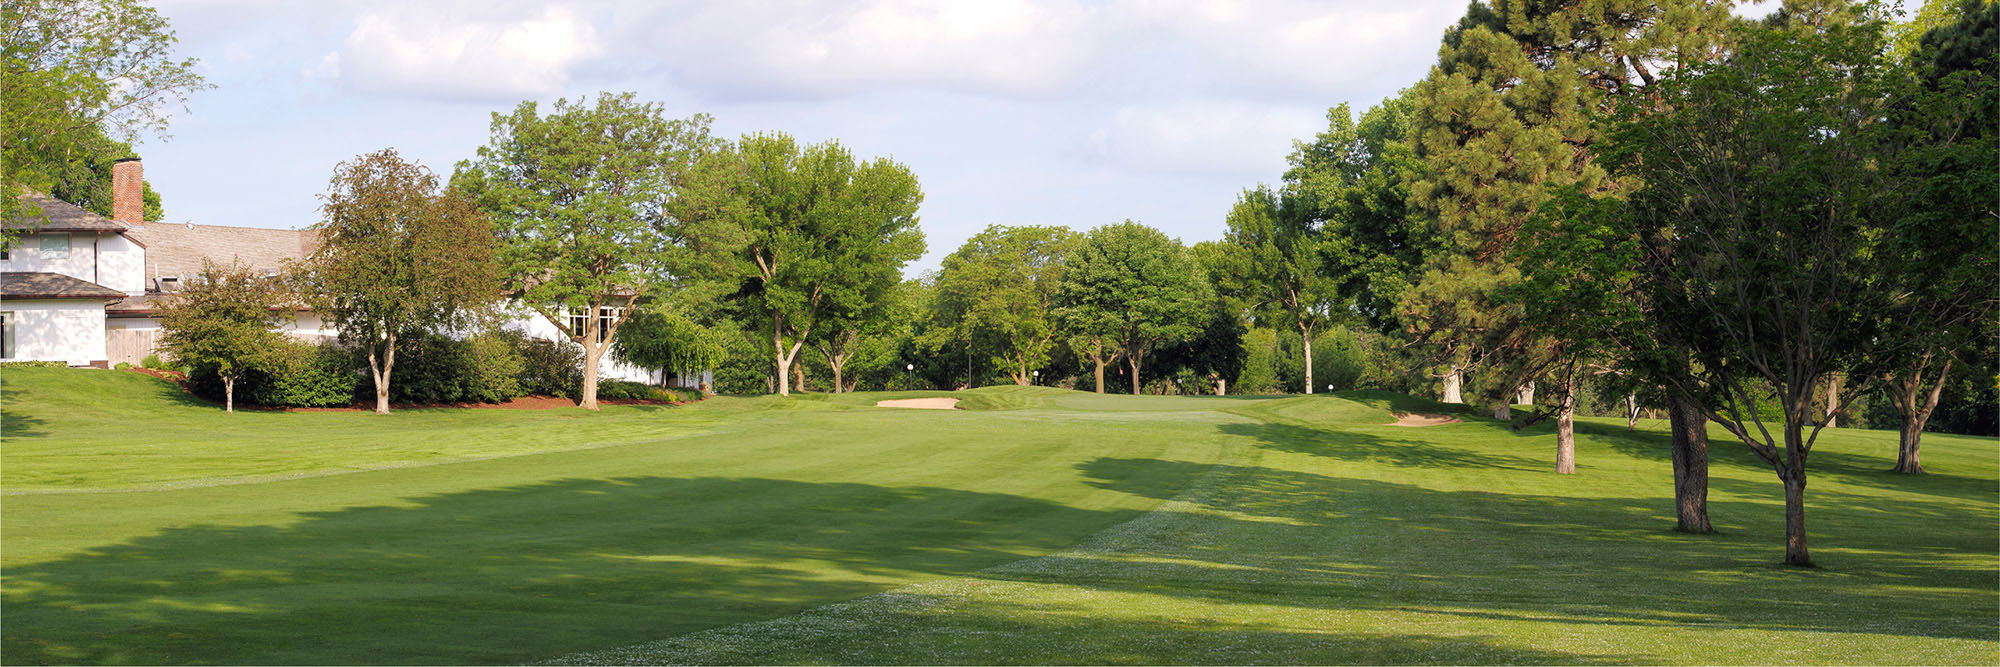 Golf Course Image - Country Club of Lincoln No. 18